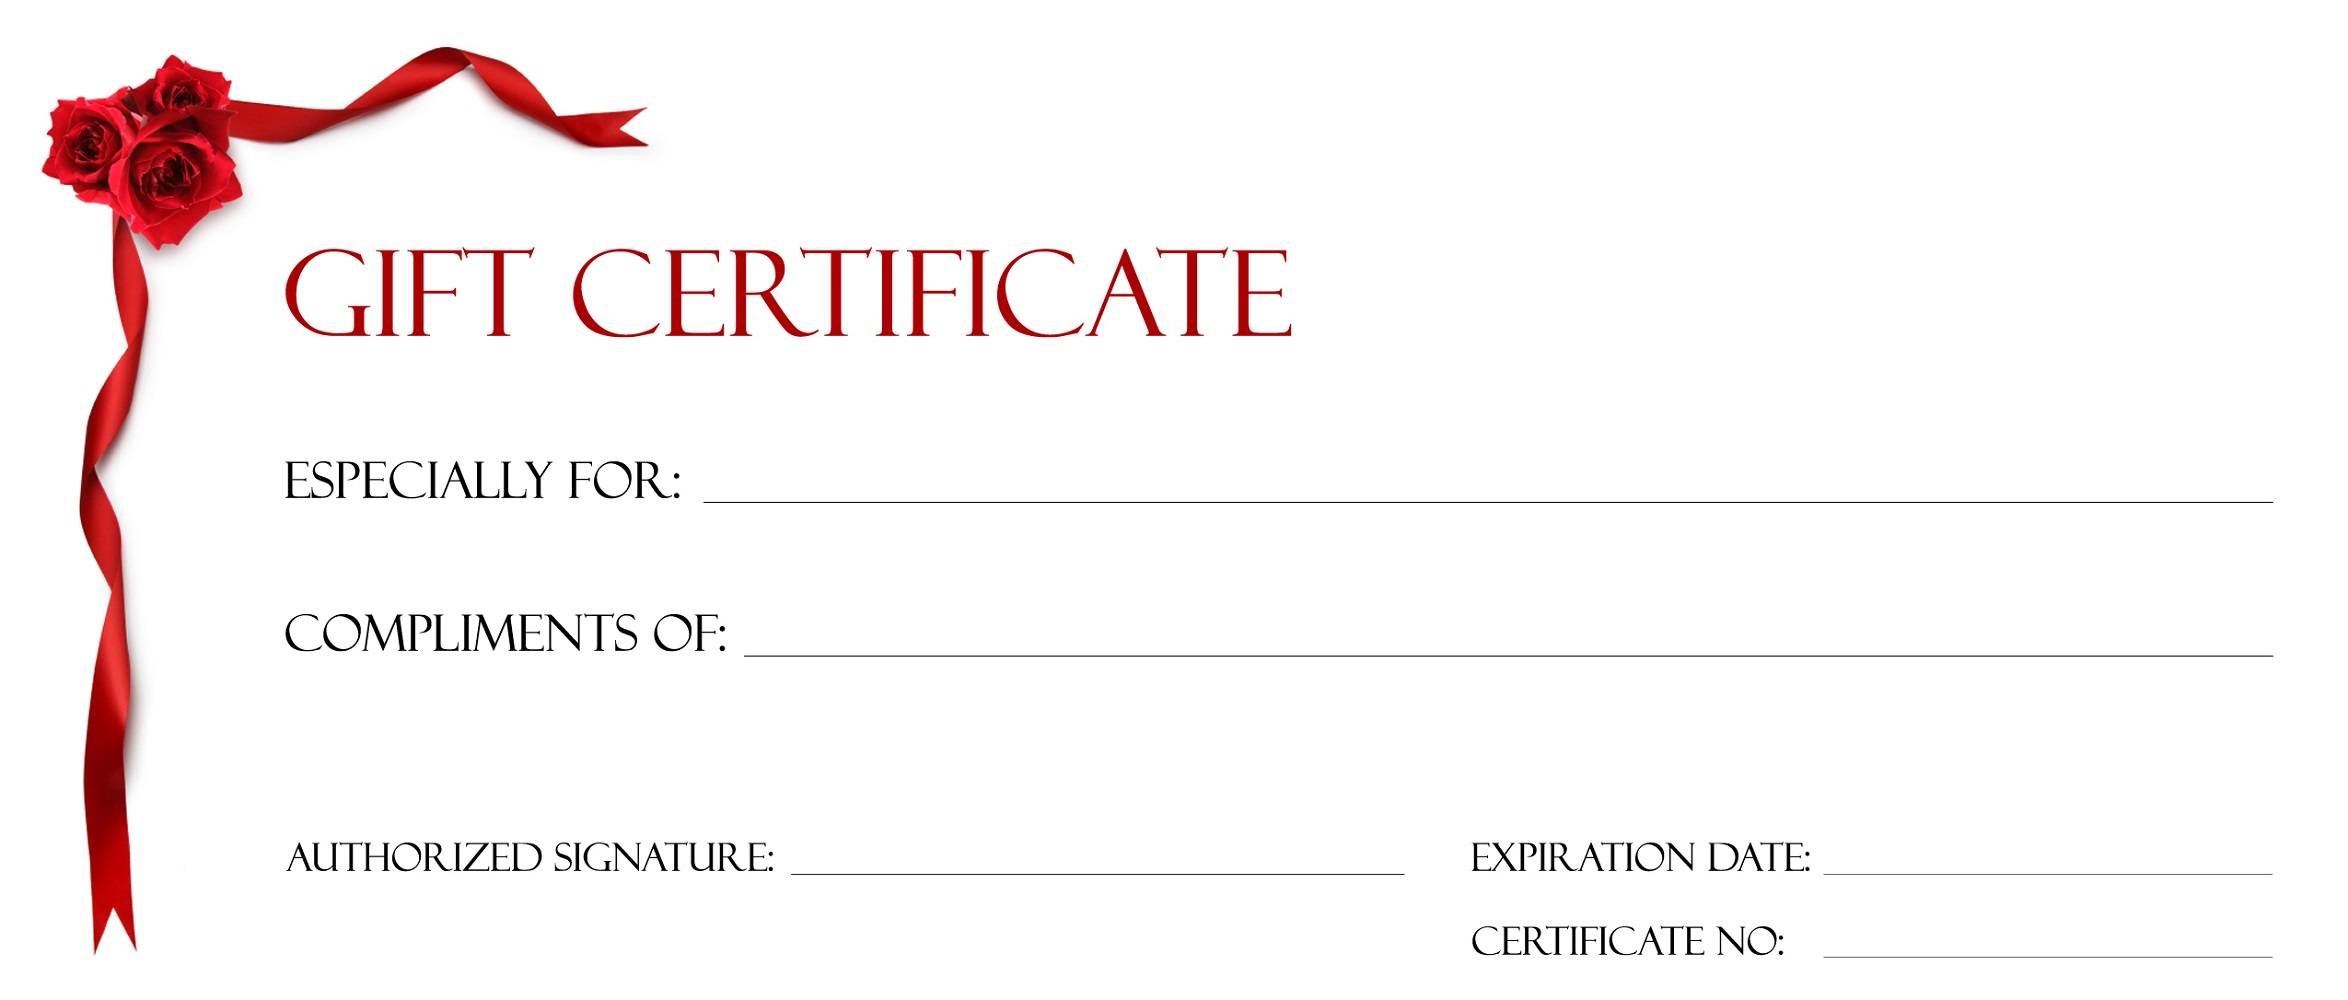 Superb Gift Certificate Template Design Idea Personalized Gift Certificates Template Free